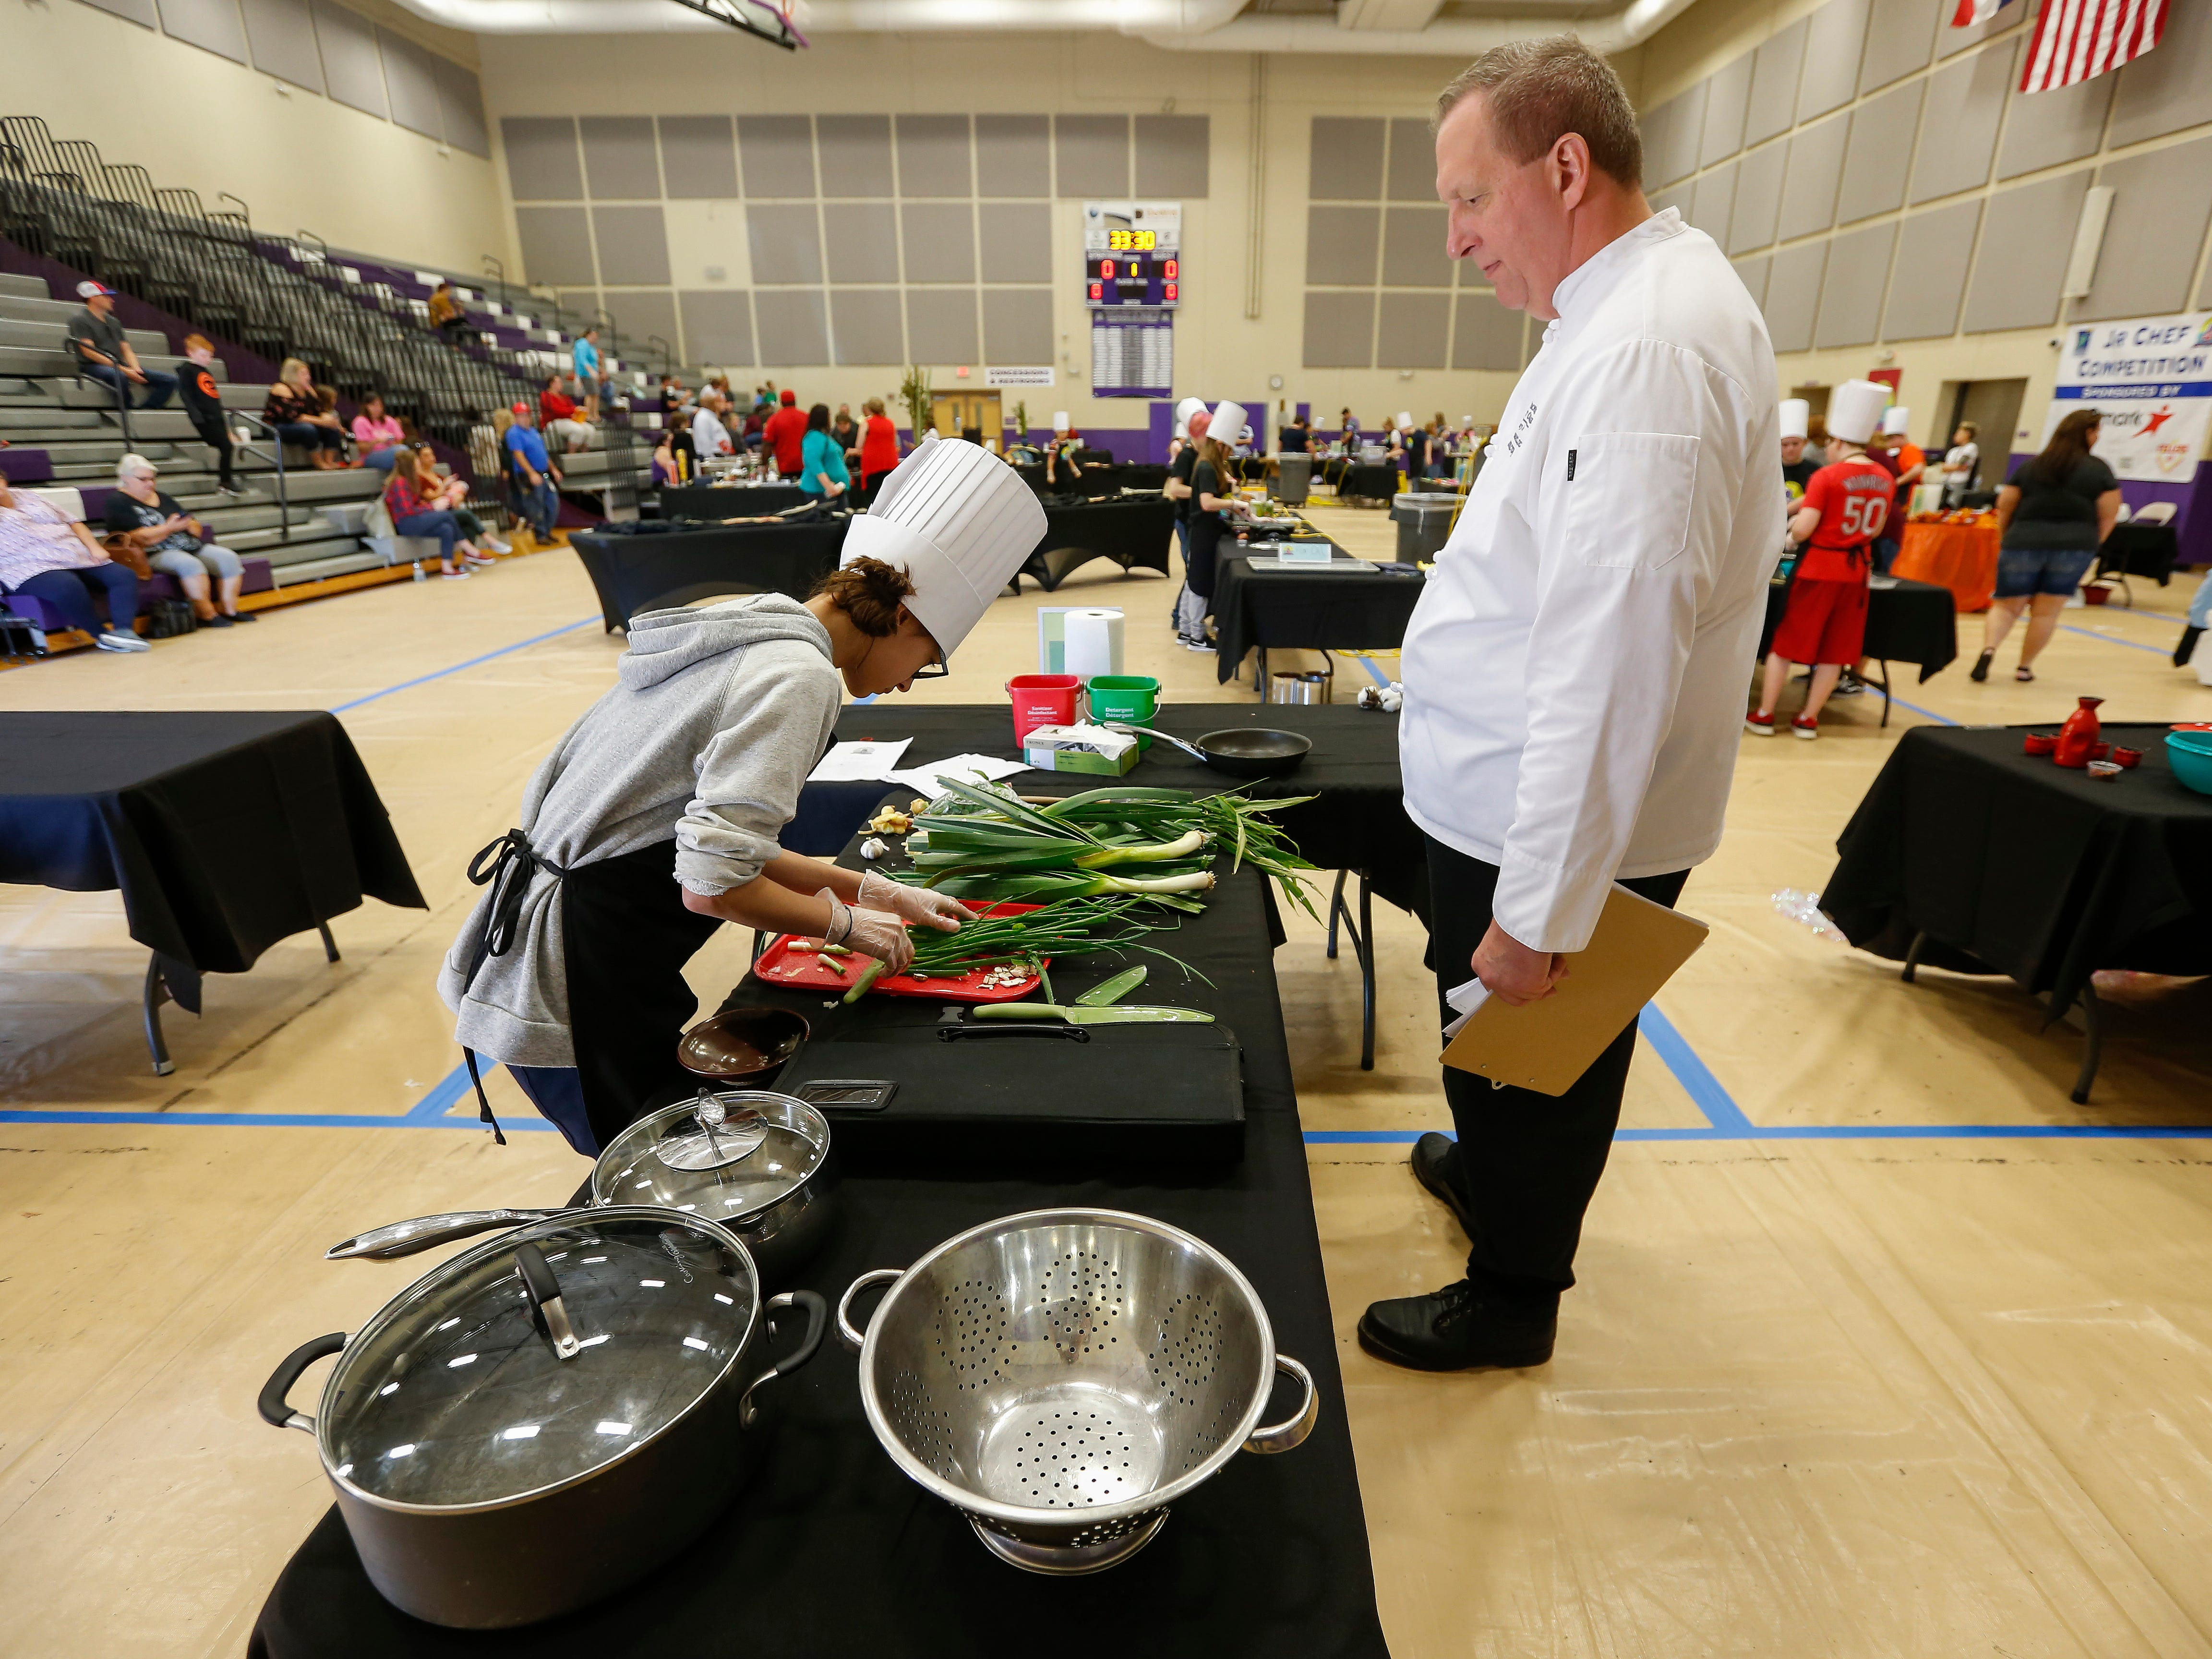 Judge Jeff Ward watches as Danielle McCorison, a student at Central Scholars, chops green onions during the third annual Junior Chef Competition at Hickory Hills Middle School on Saturday, Sept. 29, 2018.